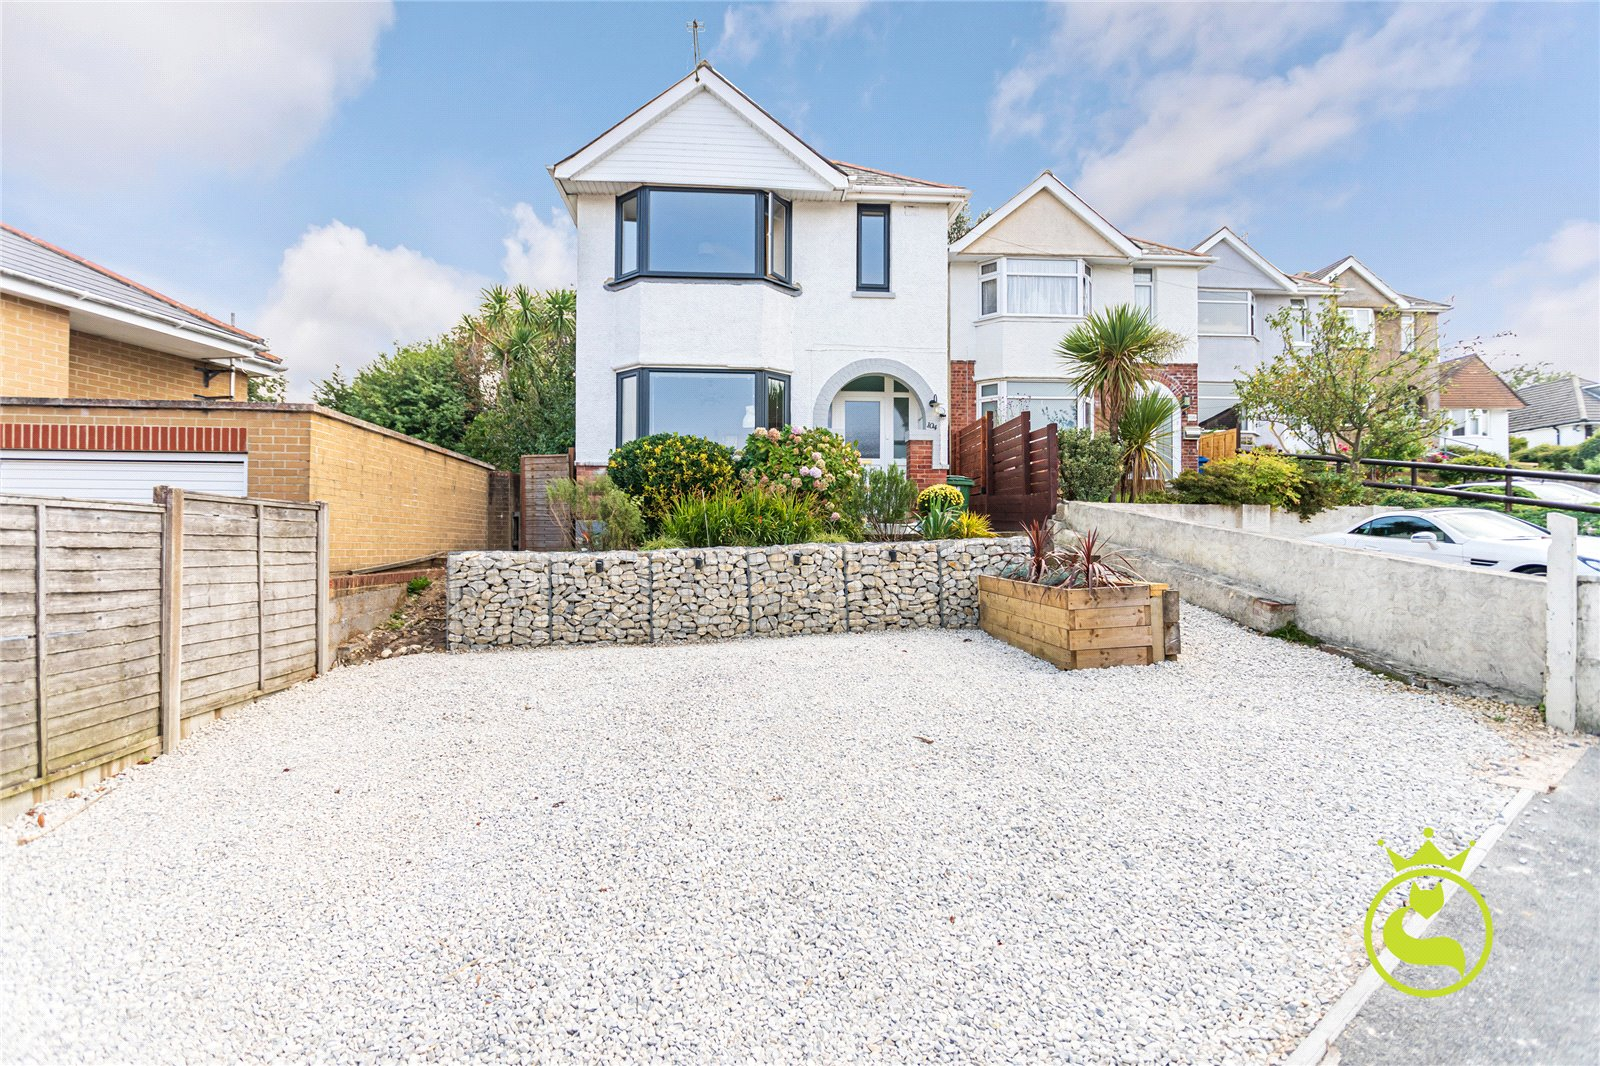 3 bed house for sale in Sheringham Road, Branksome  - Property Image 1